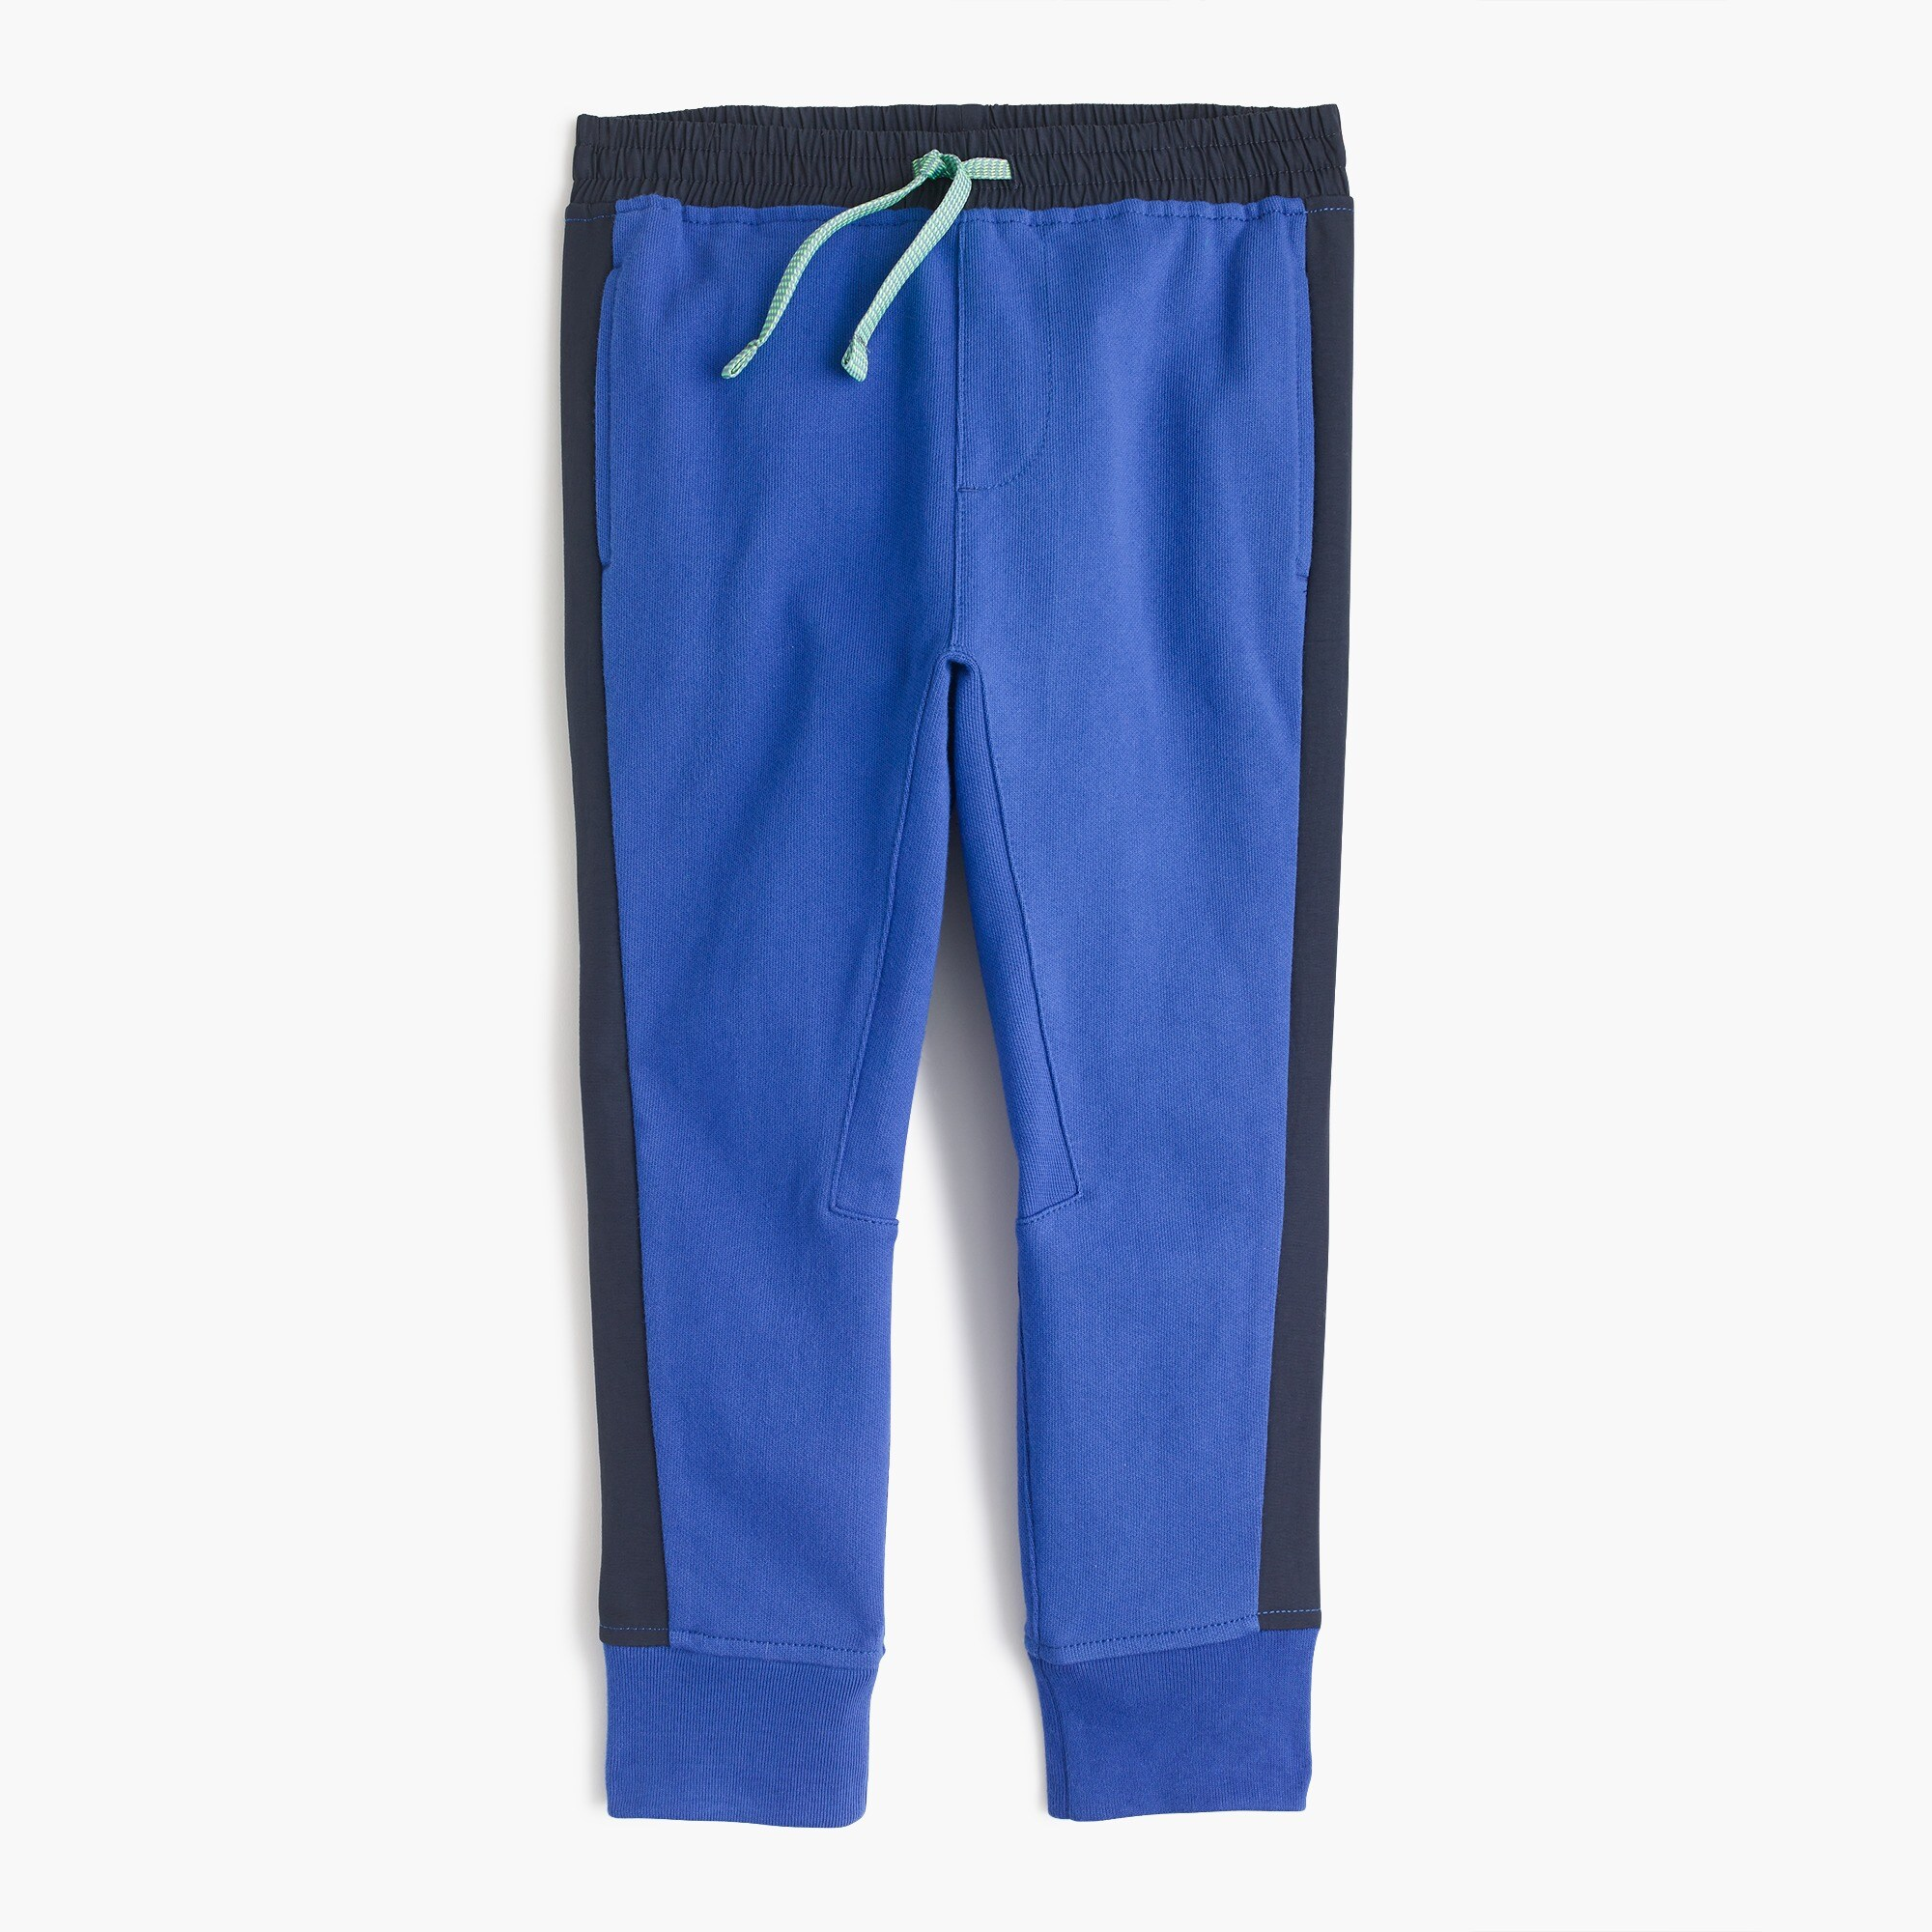 Boys' side-stripe sweatpant in slim fit boy pants c